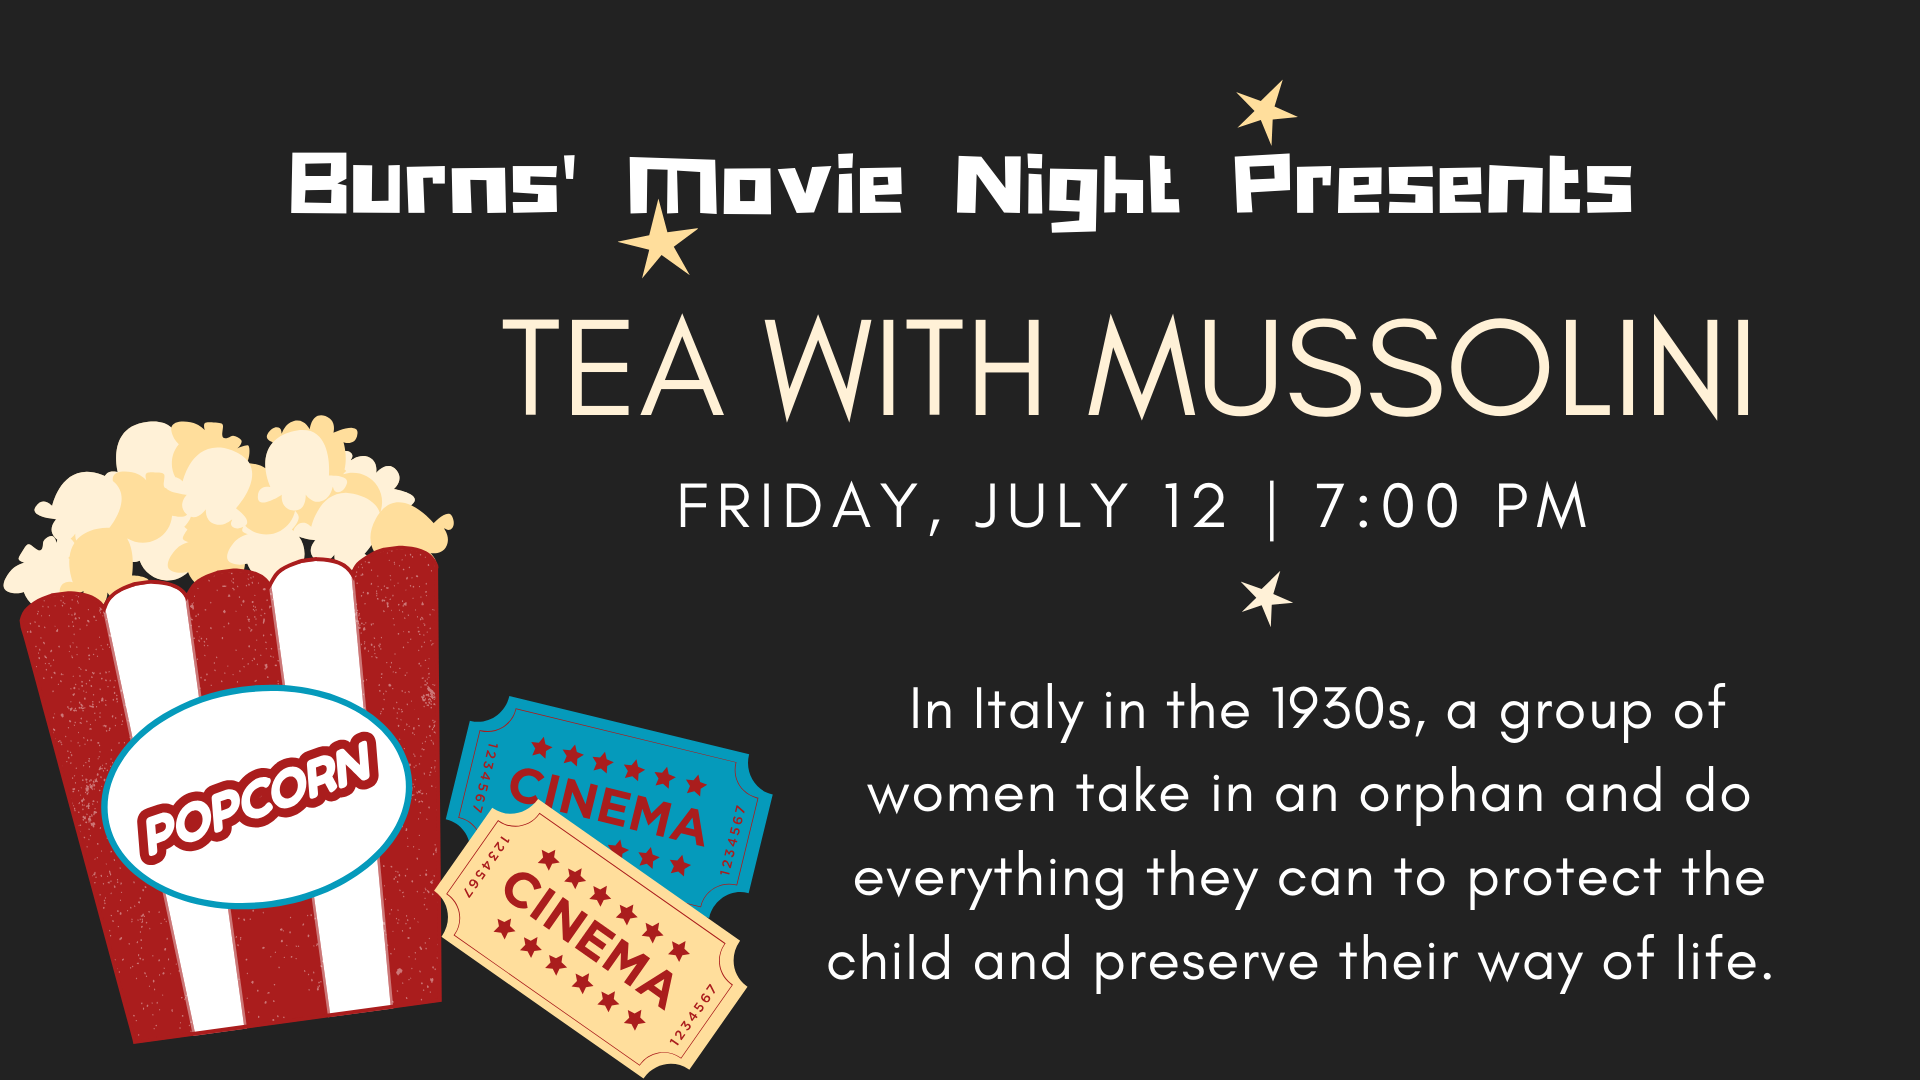 July 12 TEA WITH MUSSOLINI (1999, PG). A group of English women living in Italy in the 1930s take in an orphan and do everything they can to protect the child and preserve their way of life, believing that fascist leader Mussolini will protect them from war's gathering storm clouds. Starring Cher, Judi Dench, Joan Plowright, Maggie Smith.